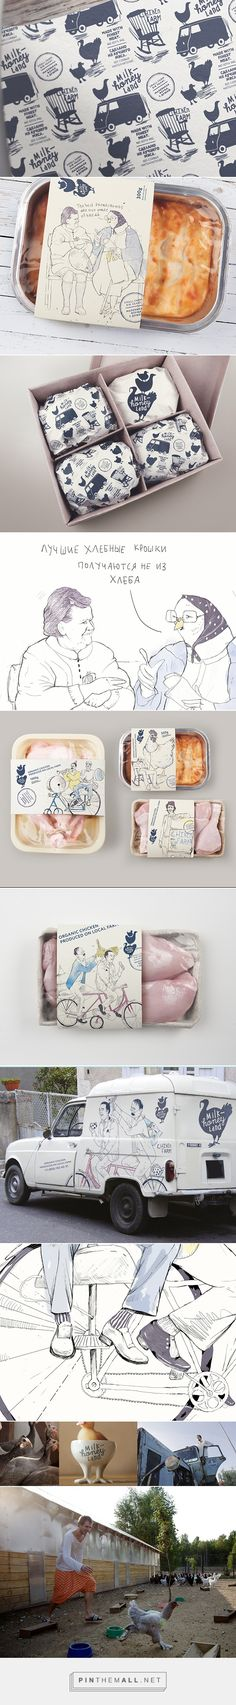 Milk & Honey Land. Depot WPF packaging on Behance by Vera Zvereva, Moscow, Russian Federation should bring a smile to your face curated by Packaging Diva PD.